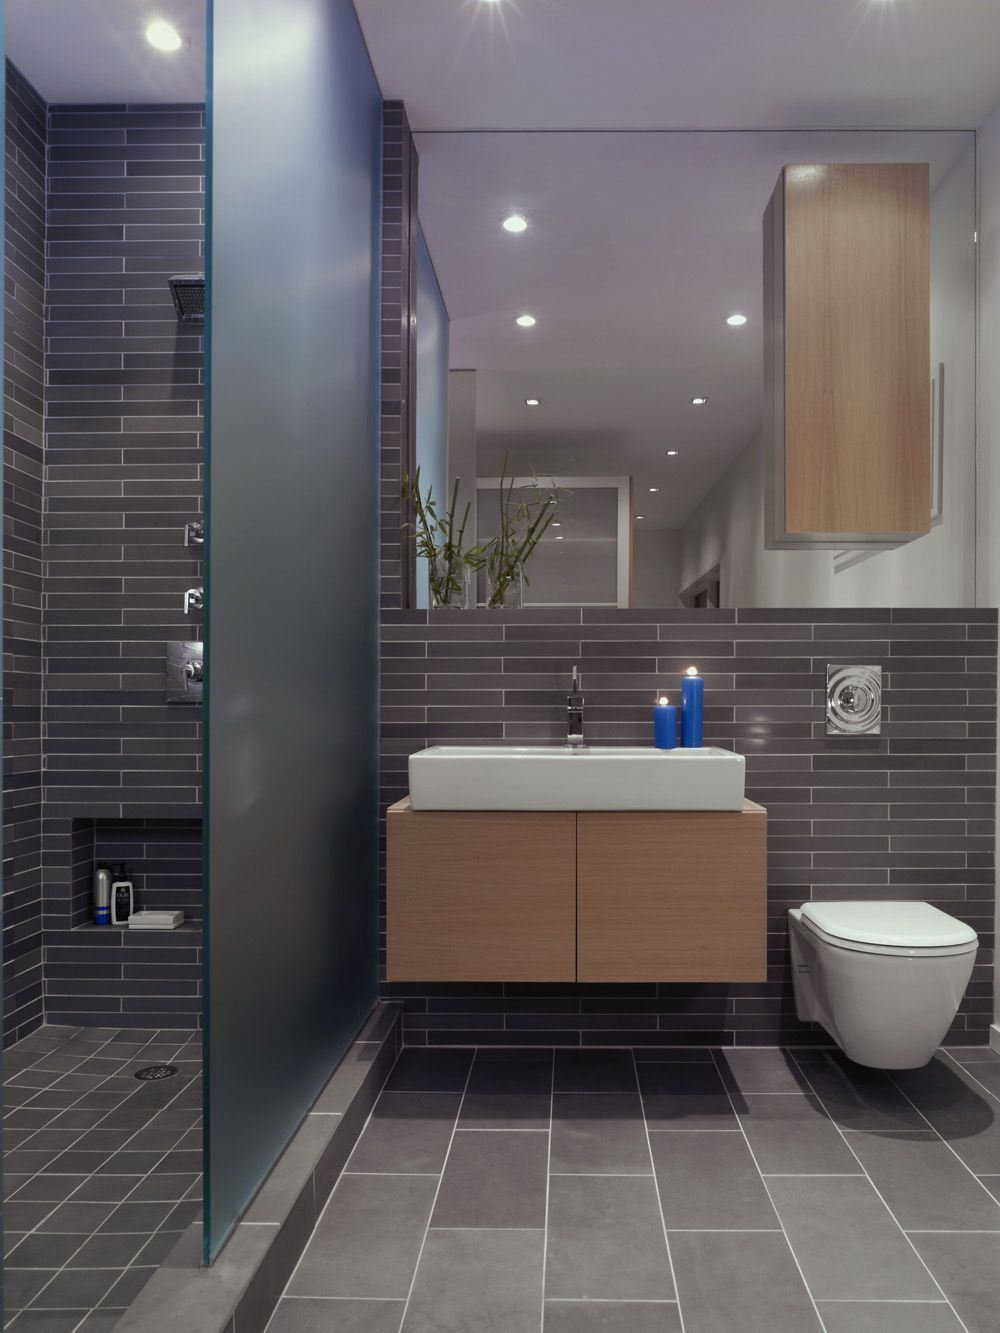 1000  images about Hall Bathroom on Pinterest   Contemporary bathrooms  Minimal bathroom and Strada. 1000  images about Hall Bathroom on Pinterest   Contemporary